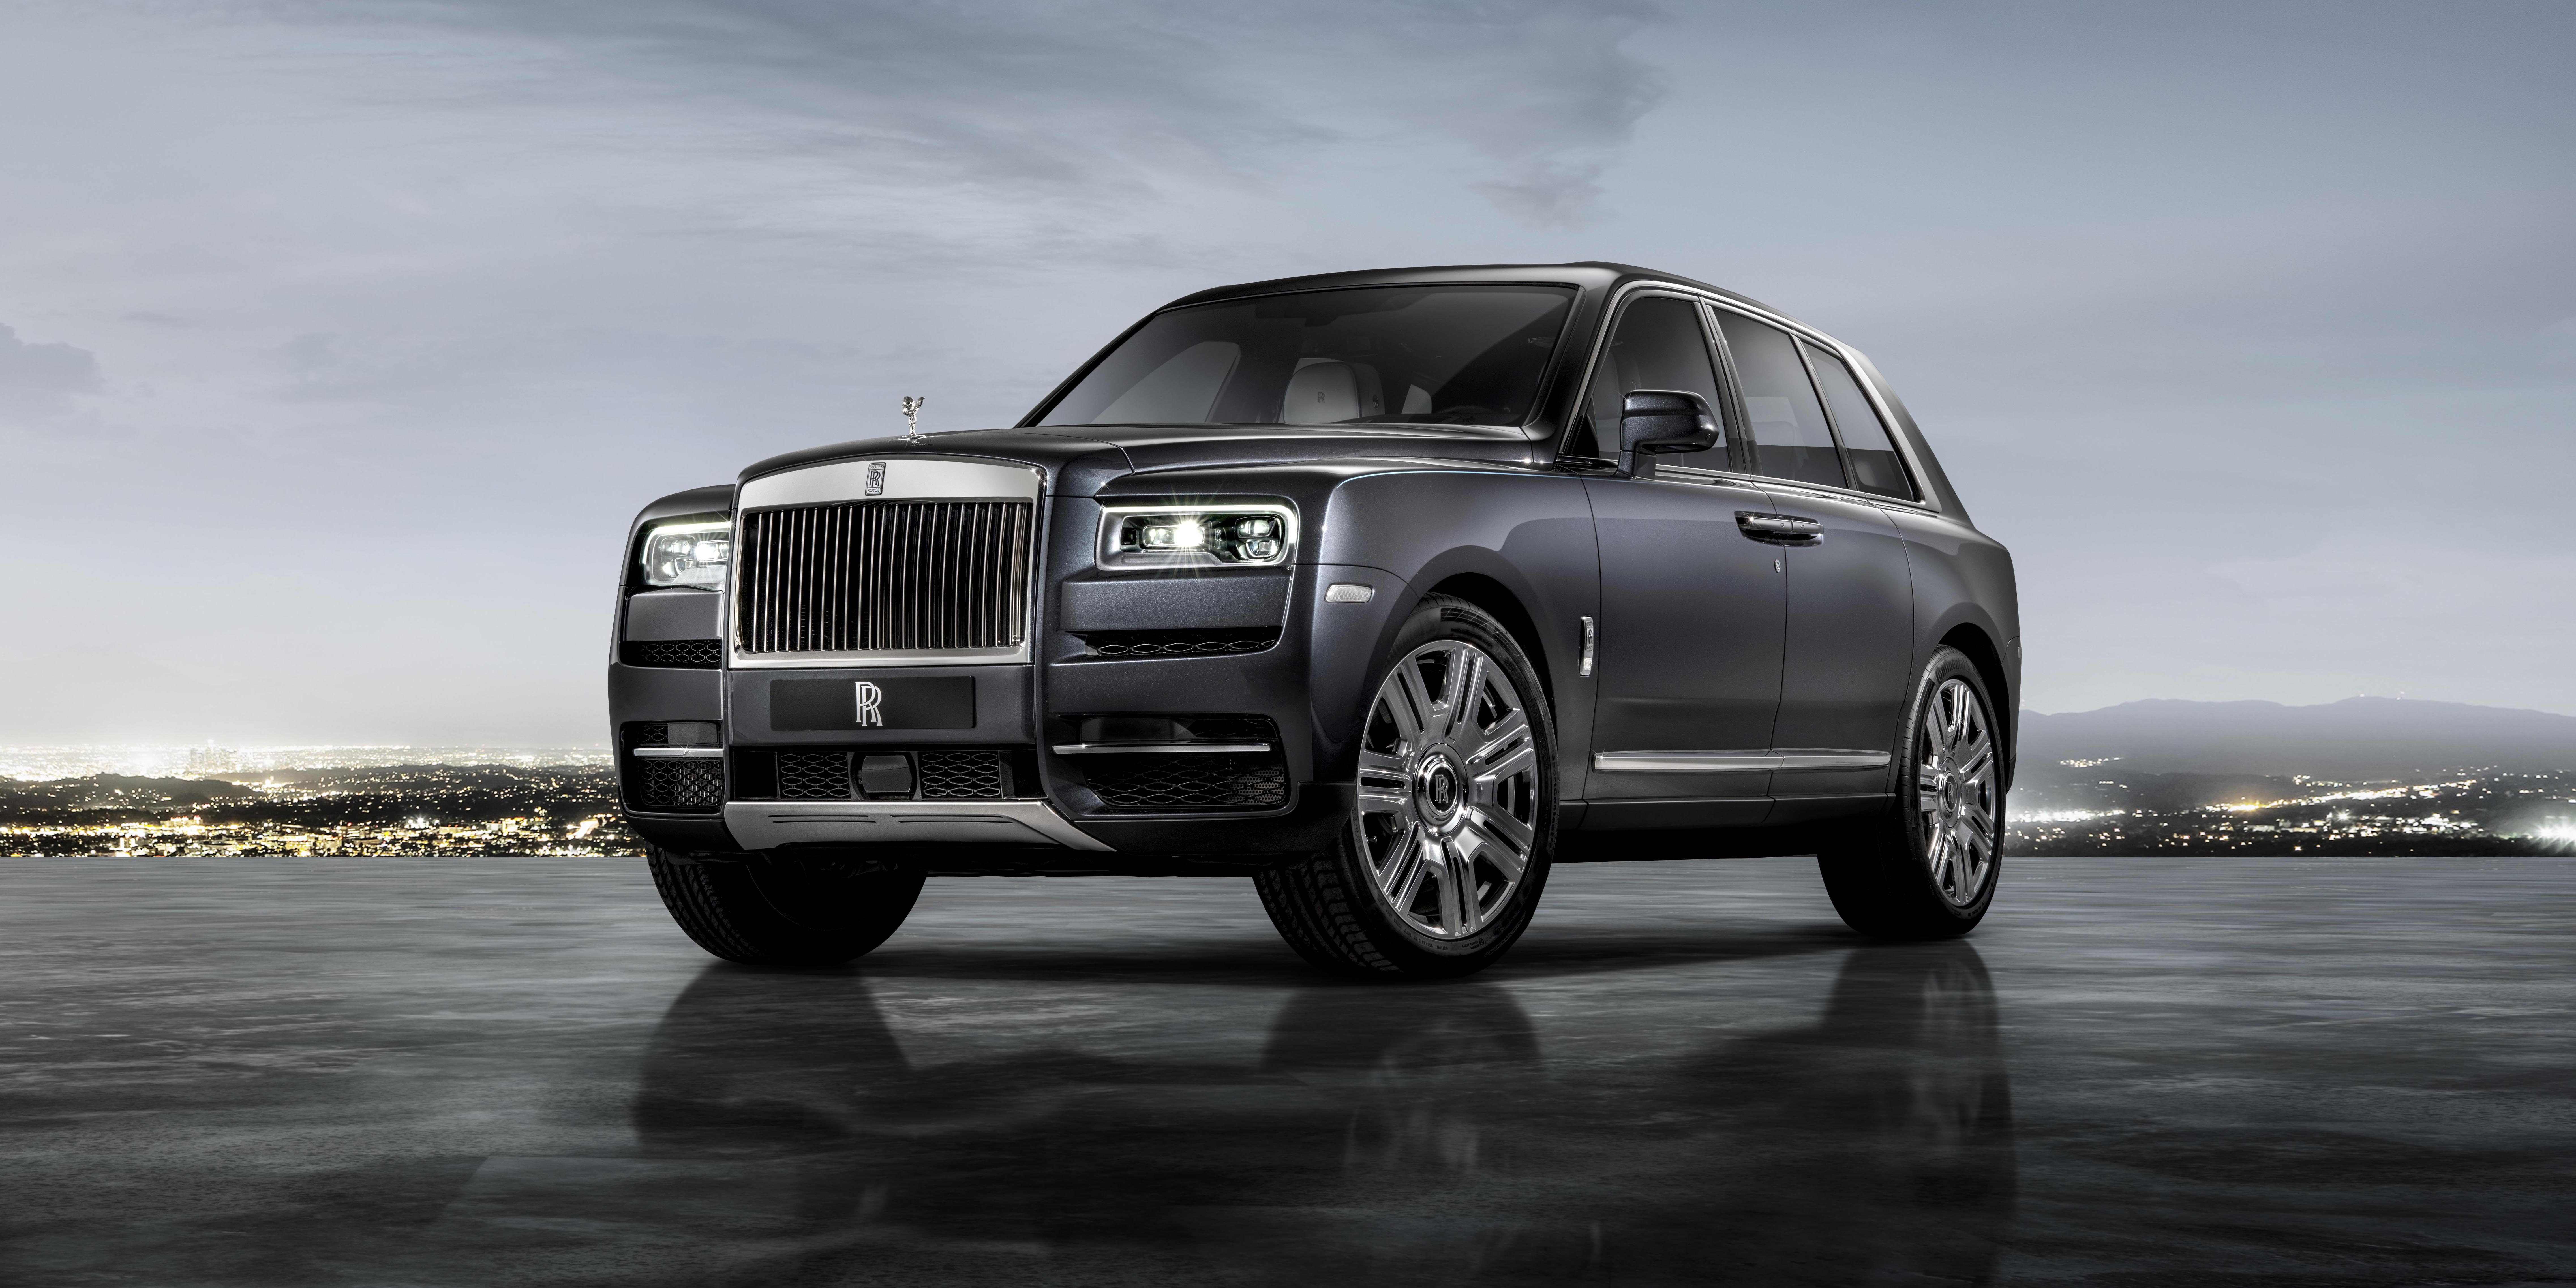 Research The 2018 Rolls Royce Phantom At Cars And Find Specs Pricing Mpg Safety Data Photos Videos Reviews Local Inventory